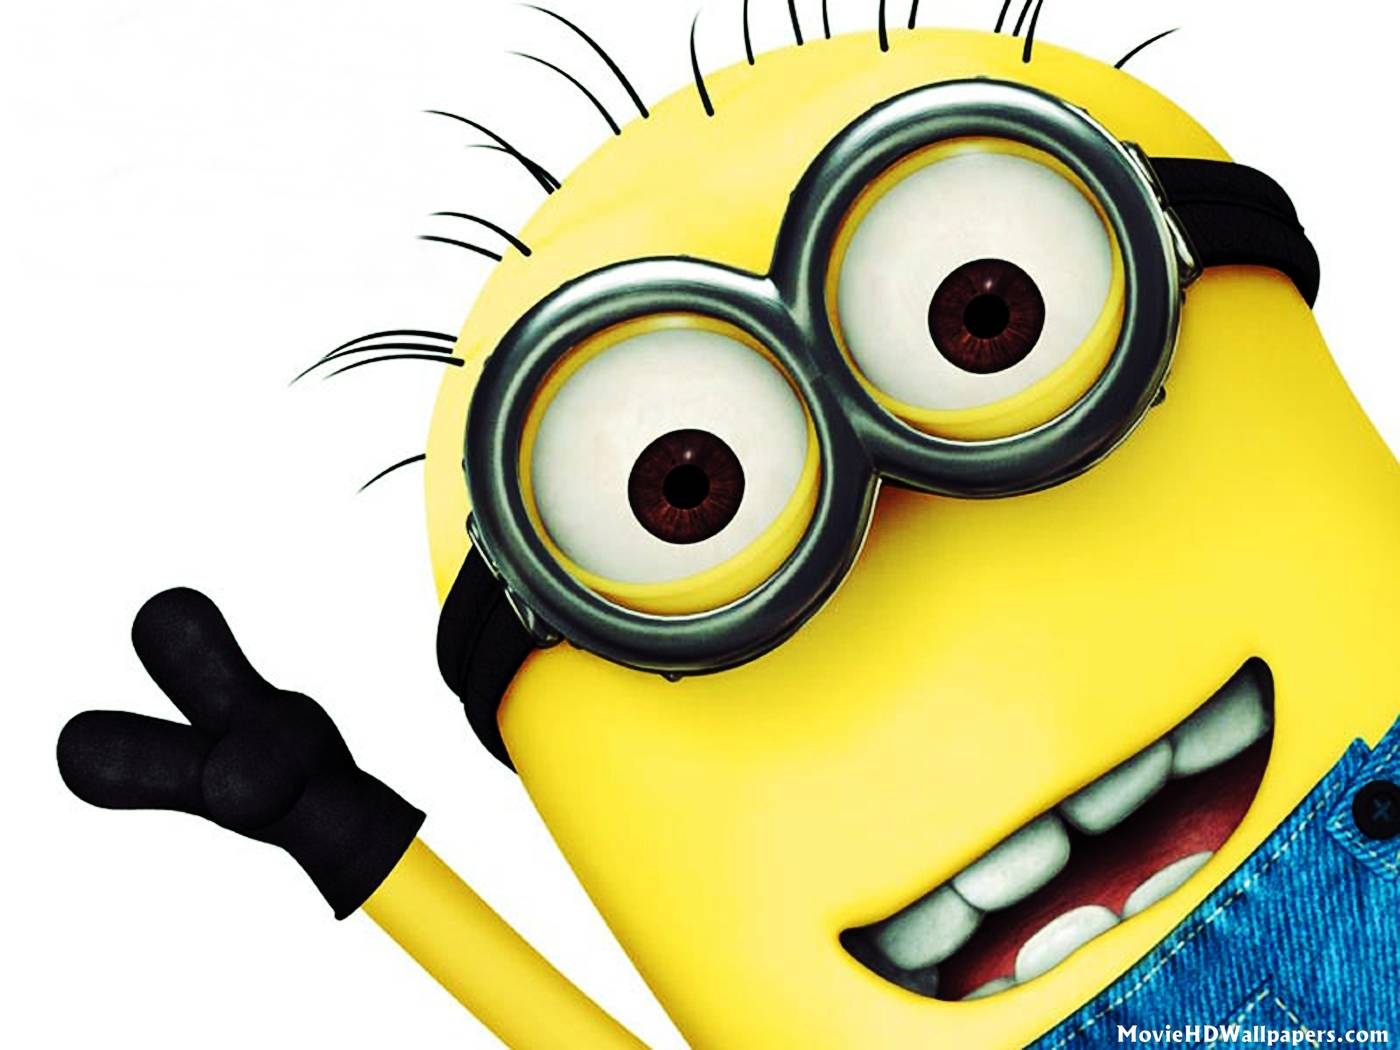 Despicable me 2 2013 movie hd wallpapers Film hd me